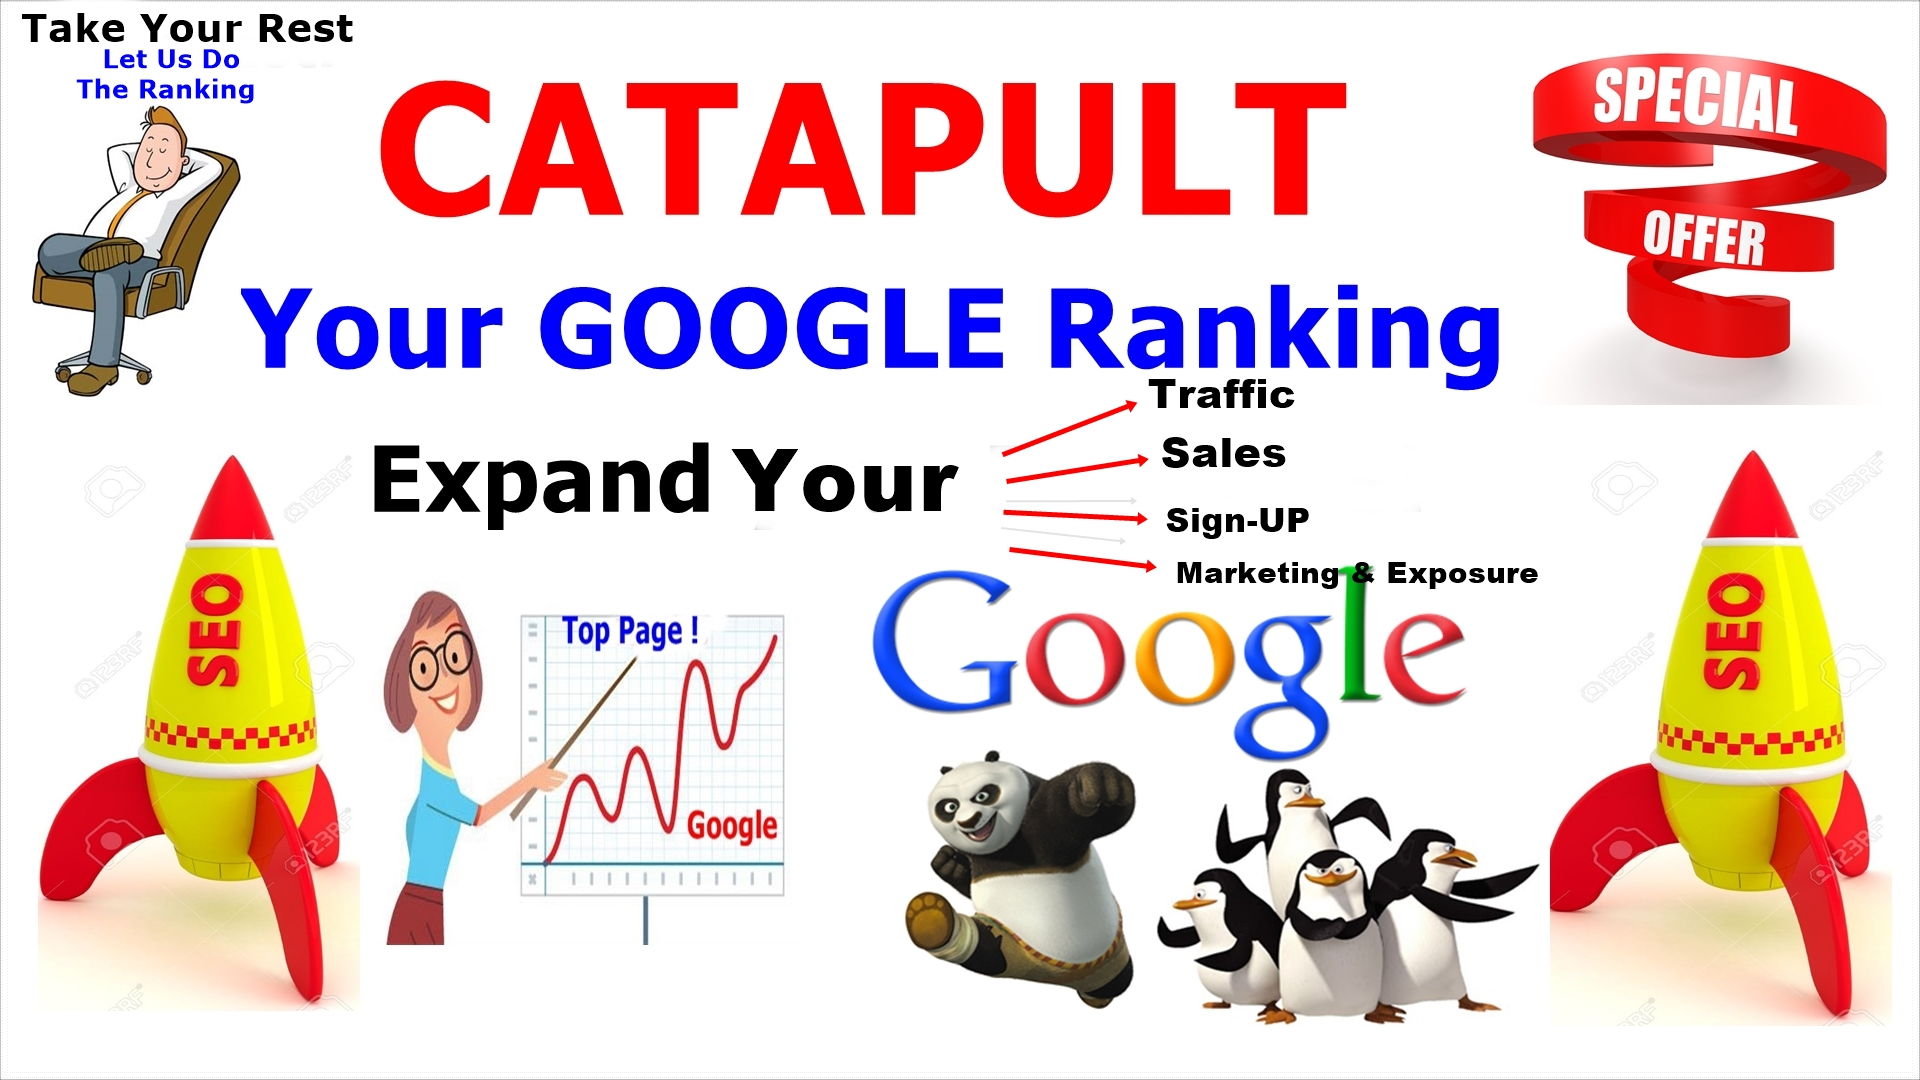 EXPRESS GOOGLE PAGE #1  You Tube,  Website,  Ecommerce  FAST Ranking Backlinks 3500+ AUTHORITY Whitehat SEO -Bonus Backlinks -Limited Time Offer ORDER NOW